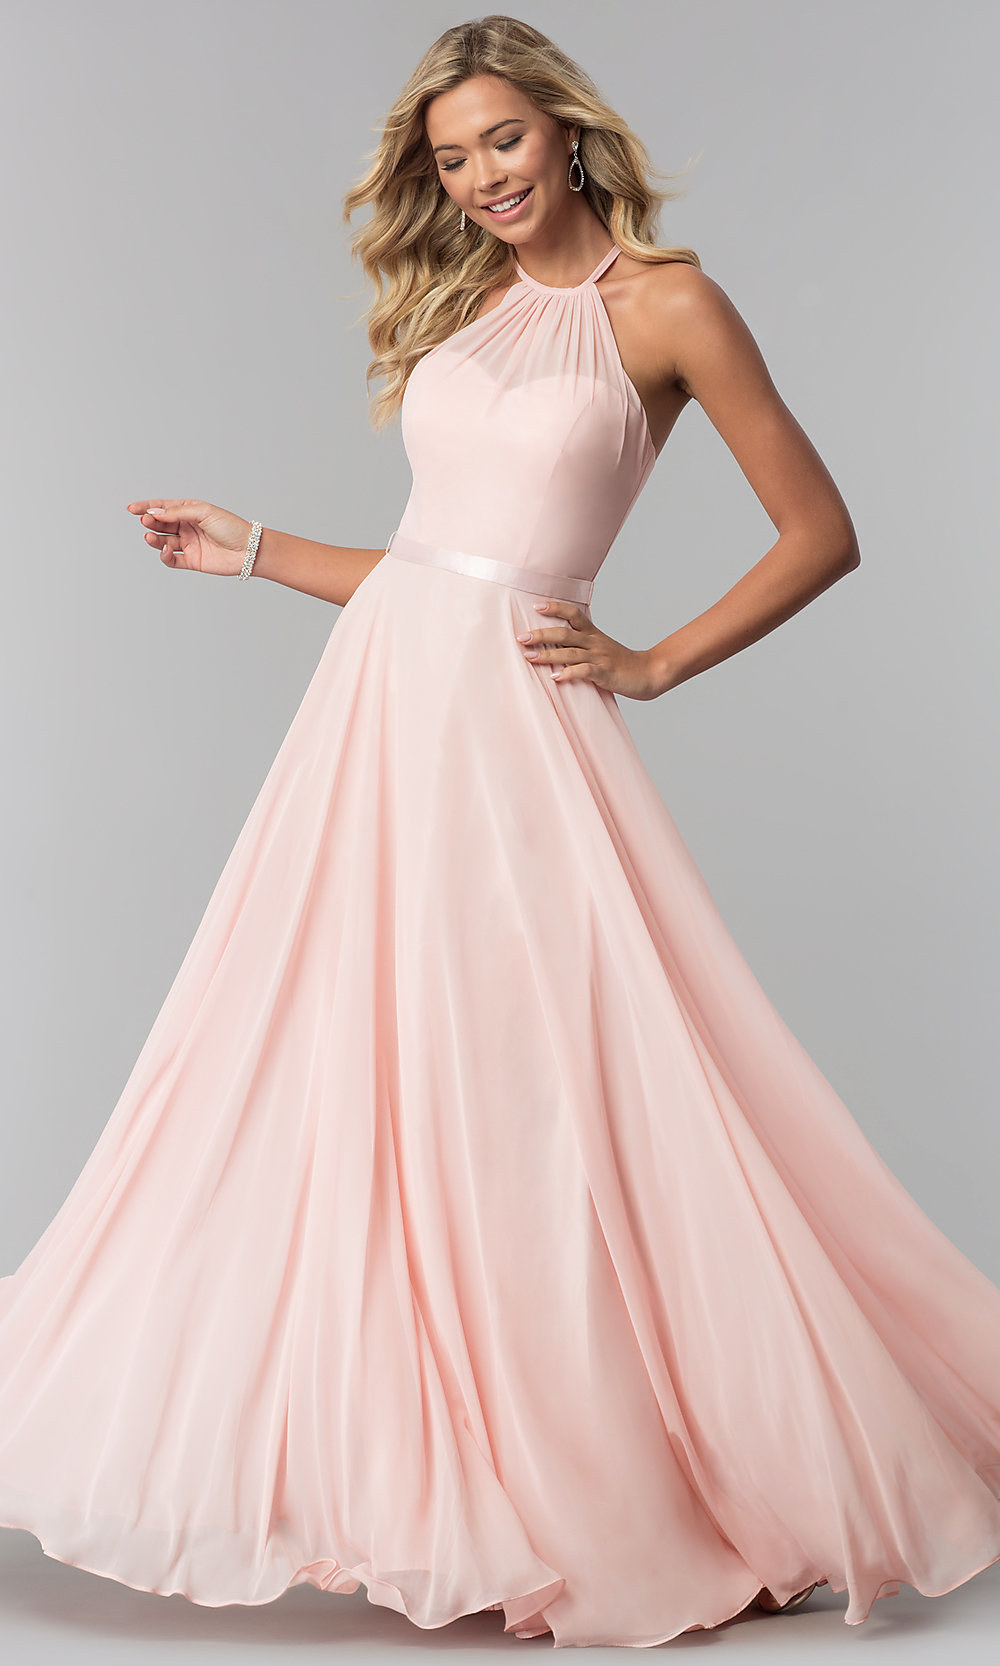 Formal A-Line Chiffon Long Formal Prom Dress- PromGirl